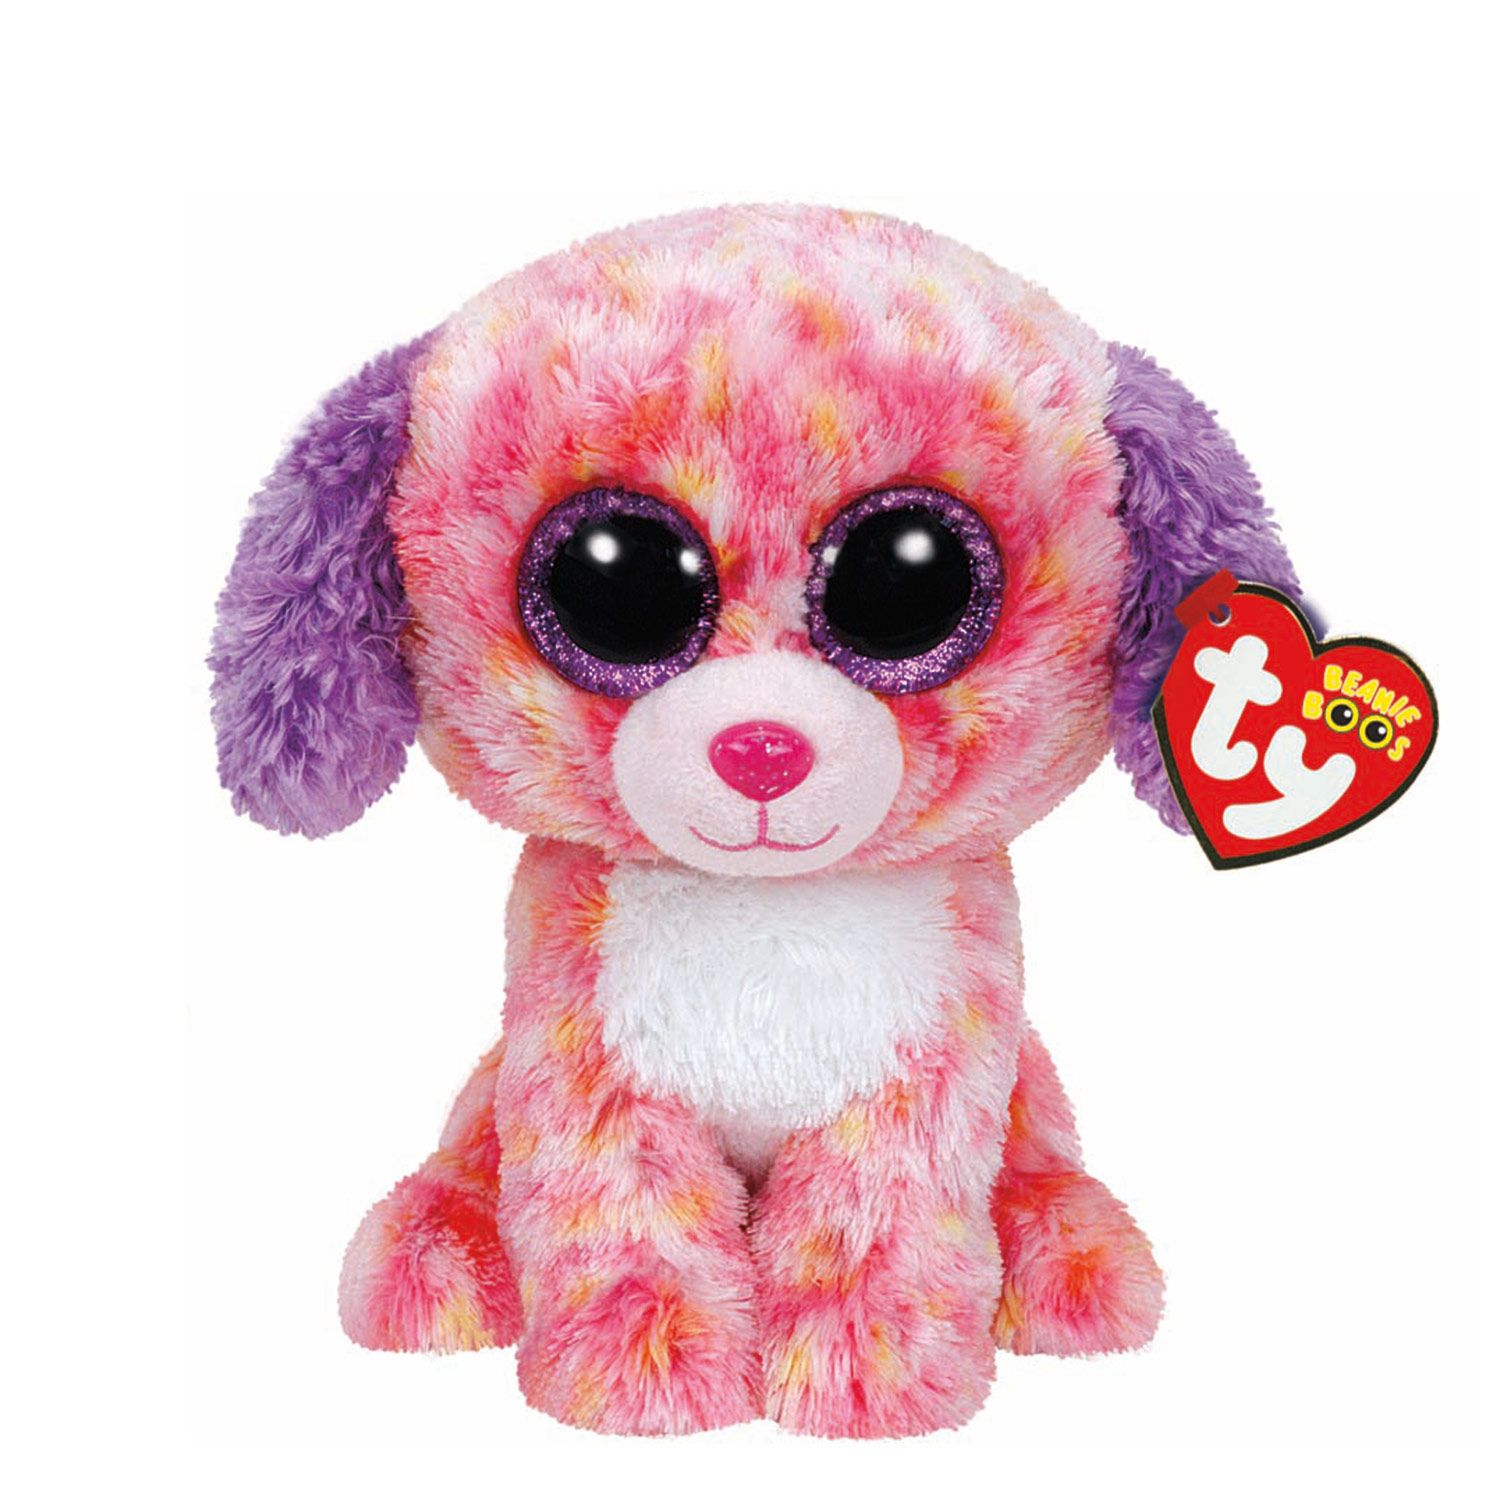 TY Beanie Boos Small London the Puppy Soft Toy Beanie